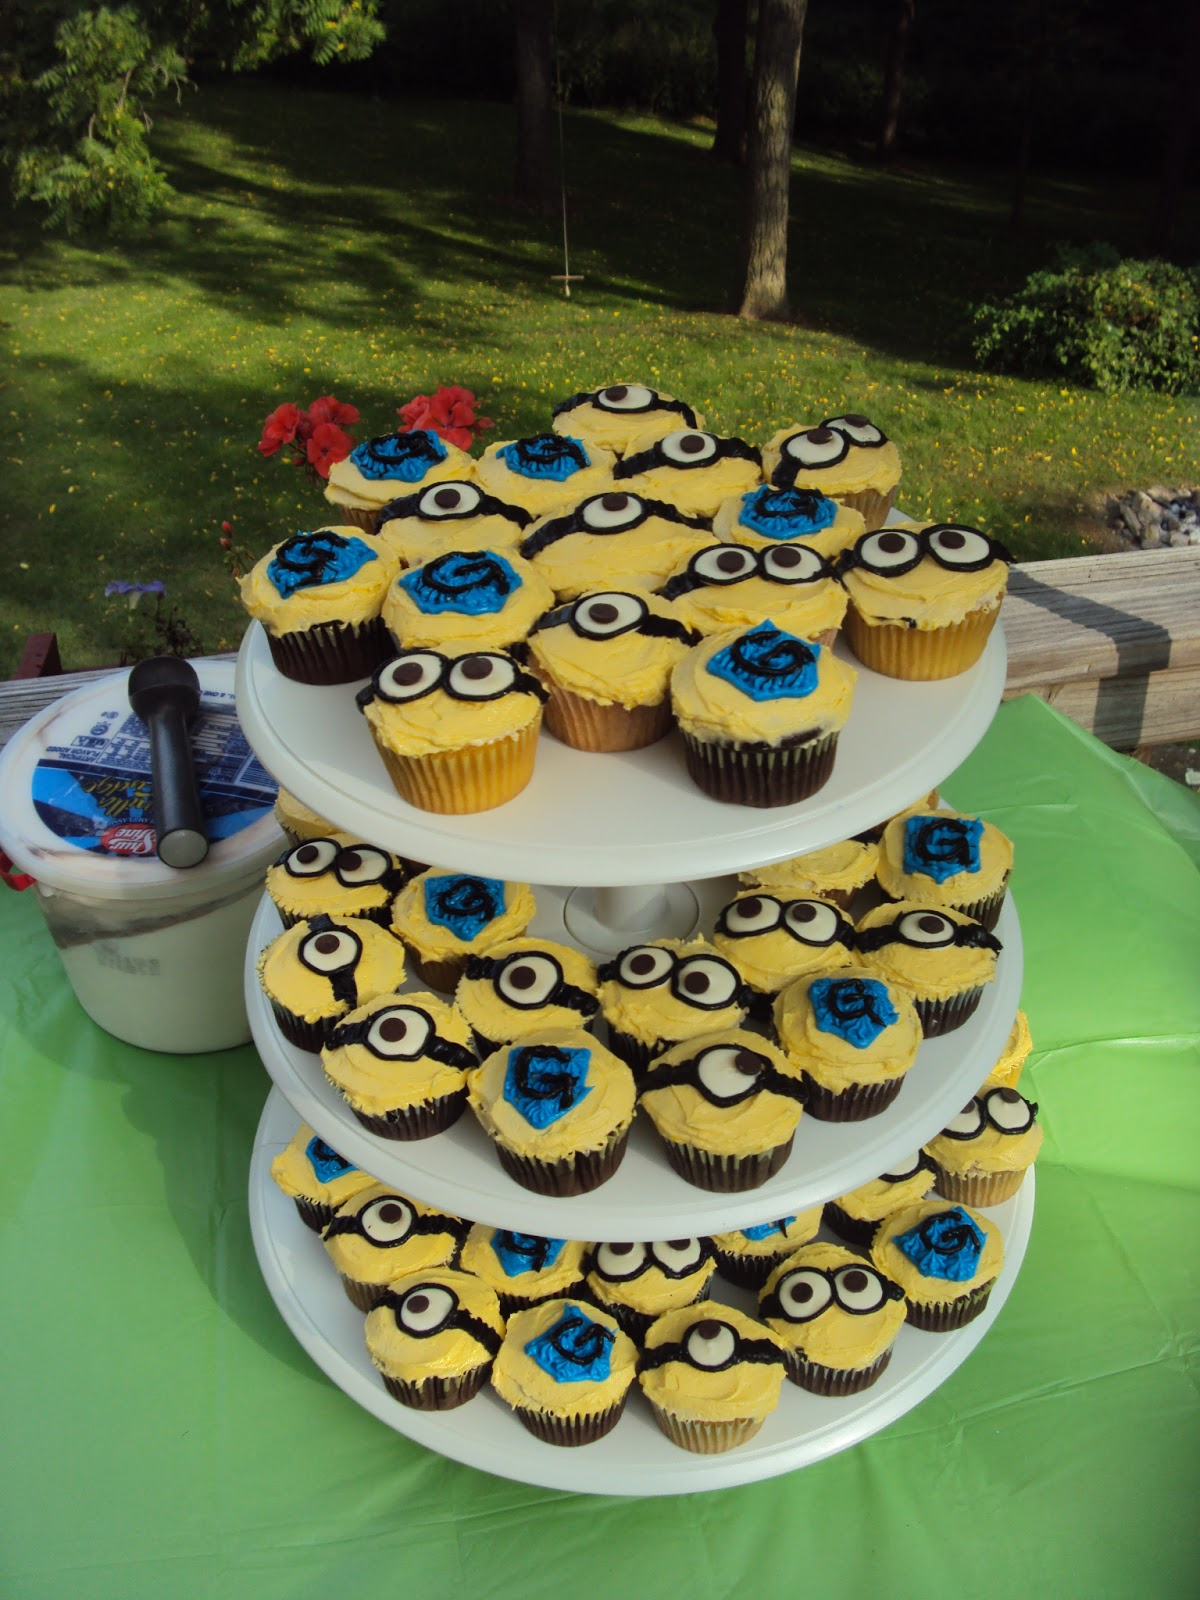 Trust Implicitly: Minion Cupcakes